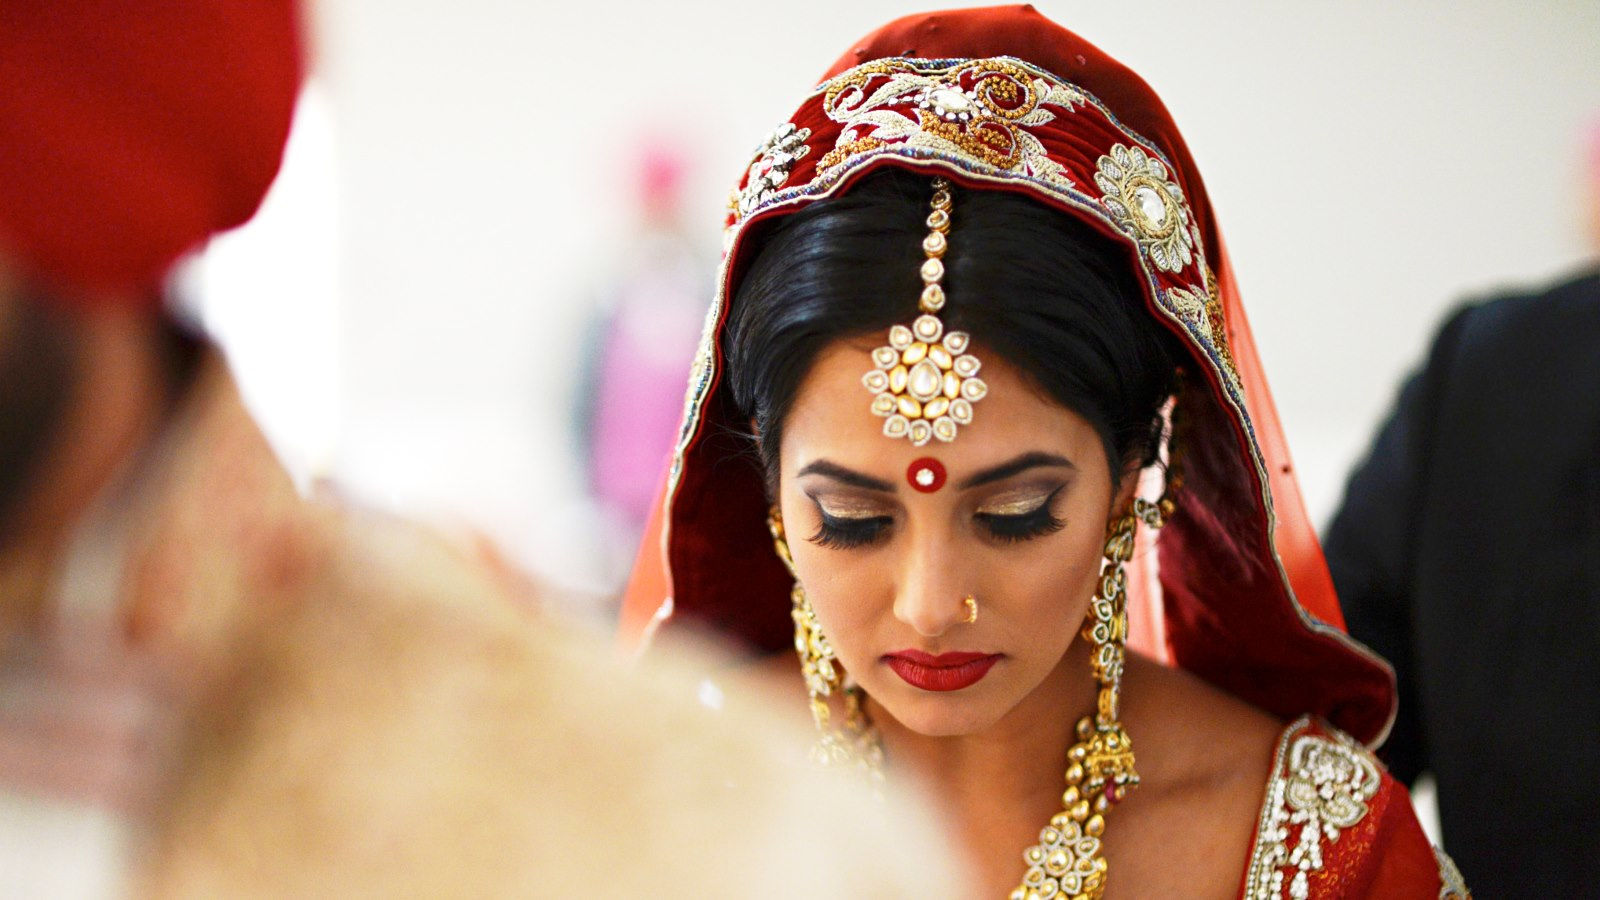 Downtown Calgary Wedding Venues - Indian Wedding Bride